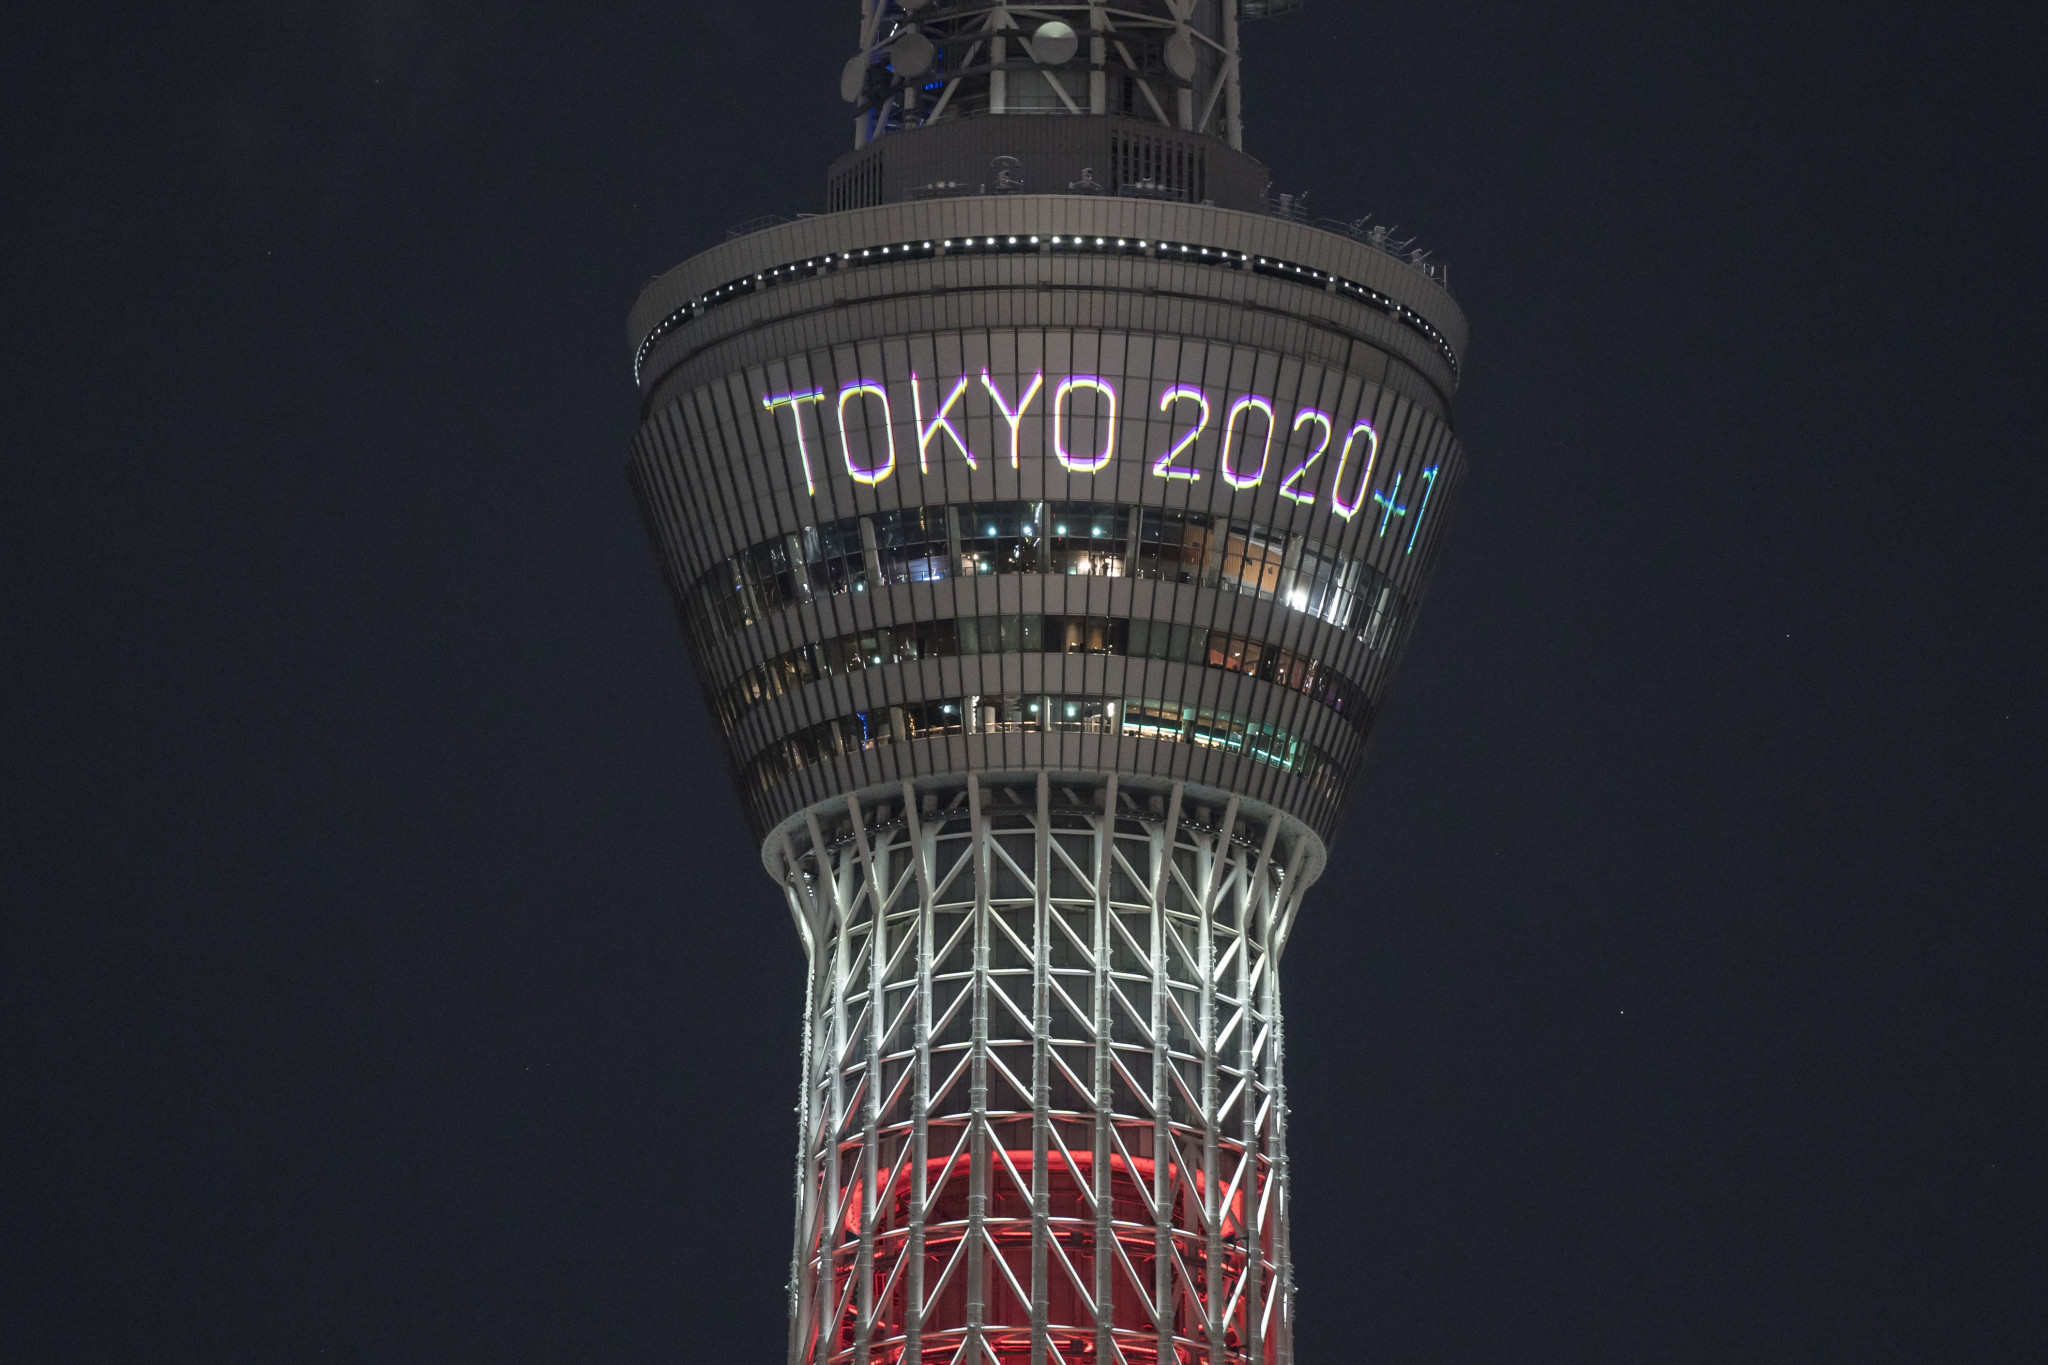 Panel to discuss travel restrictions and coronavirus countermeasures for Tokyo 2020 on Friday